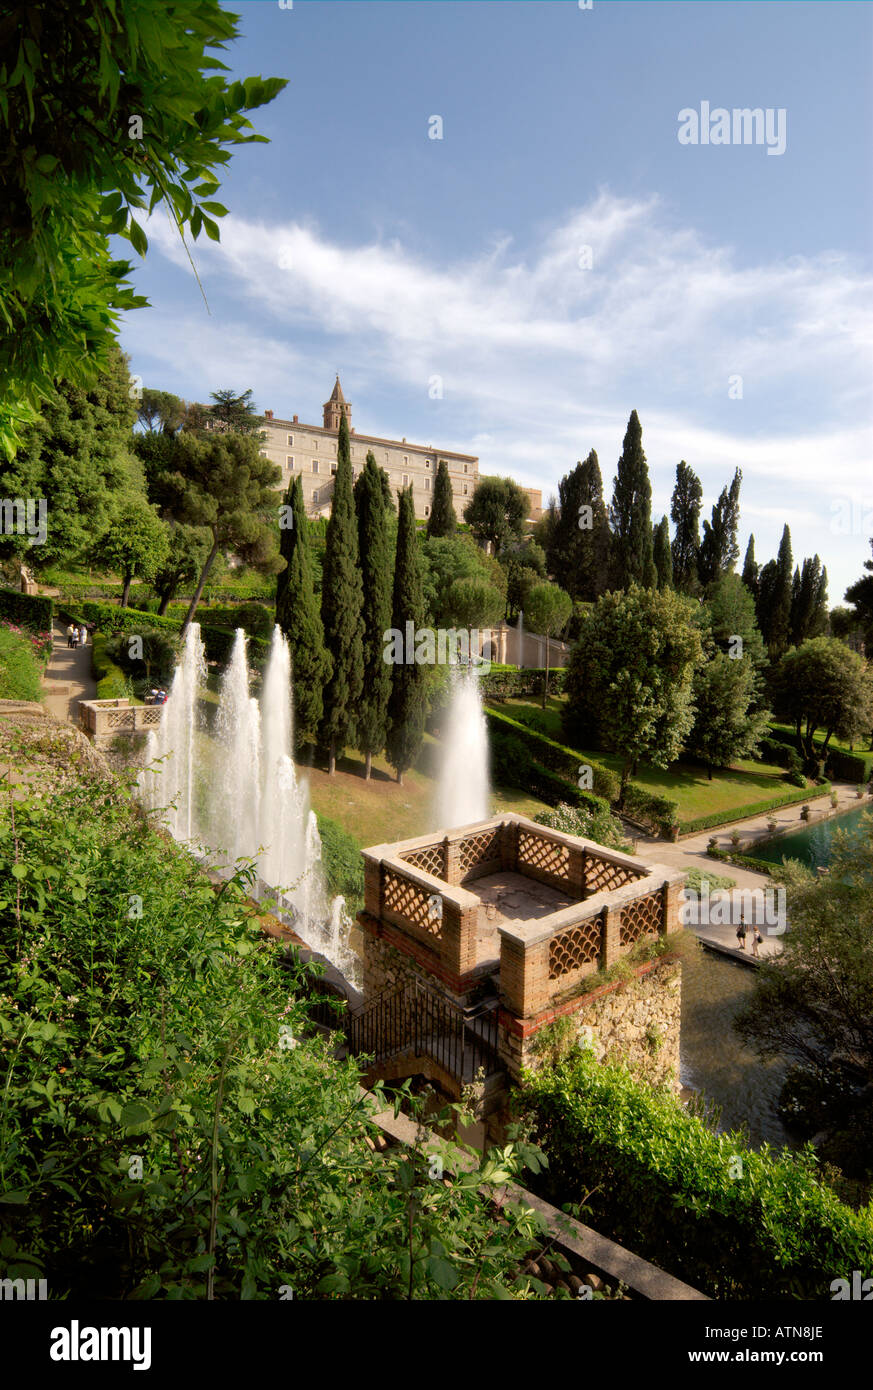 Villa d\'Este Tivoli Italy Stock Photo: 9346861 - Alamy